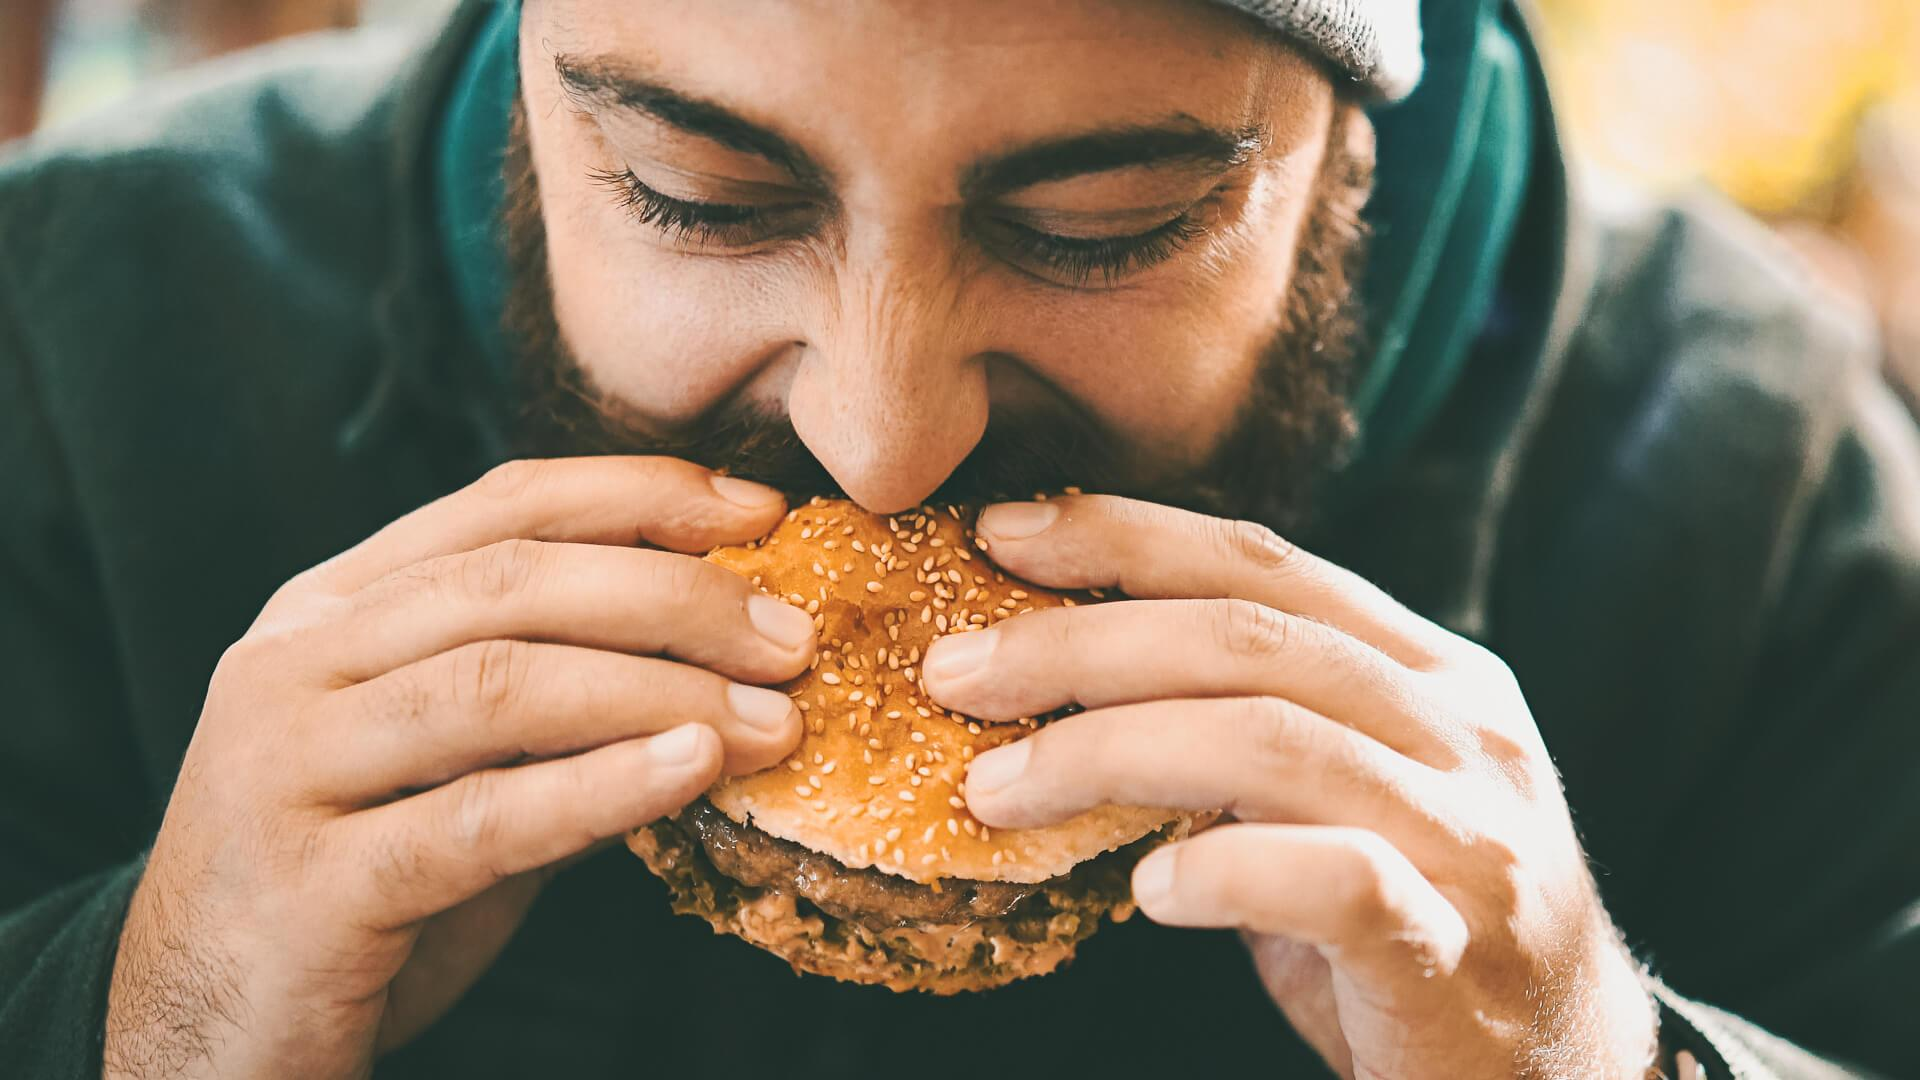 Closeup front view of a mid 20's man biting on a juicy burger outdoors.